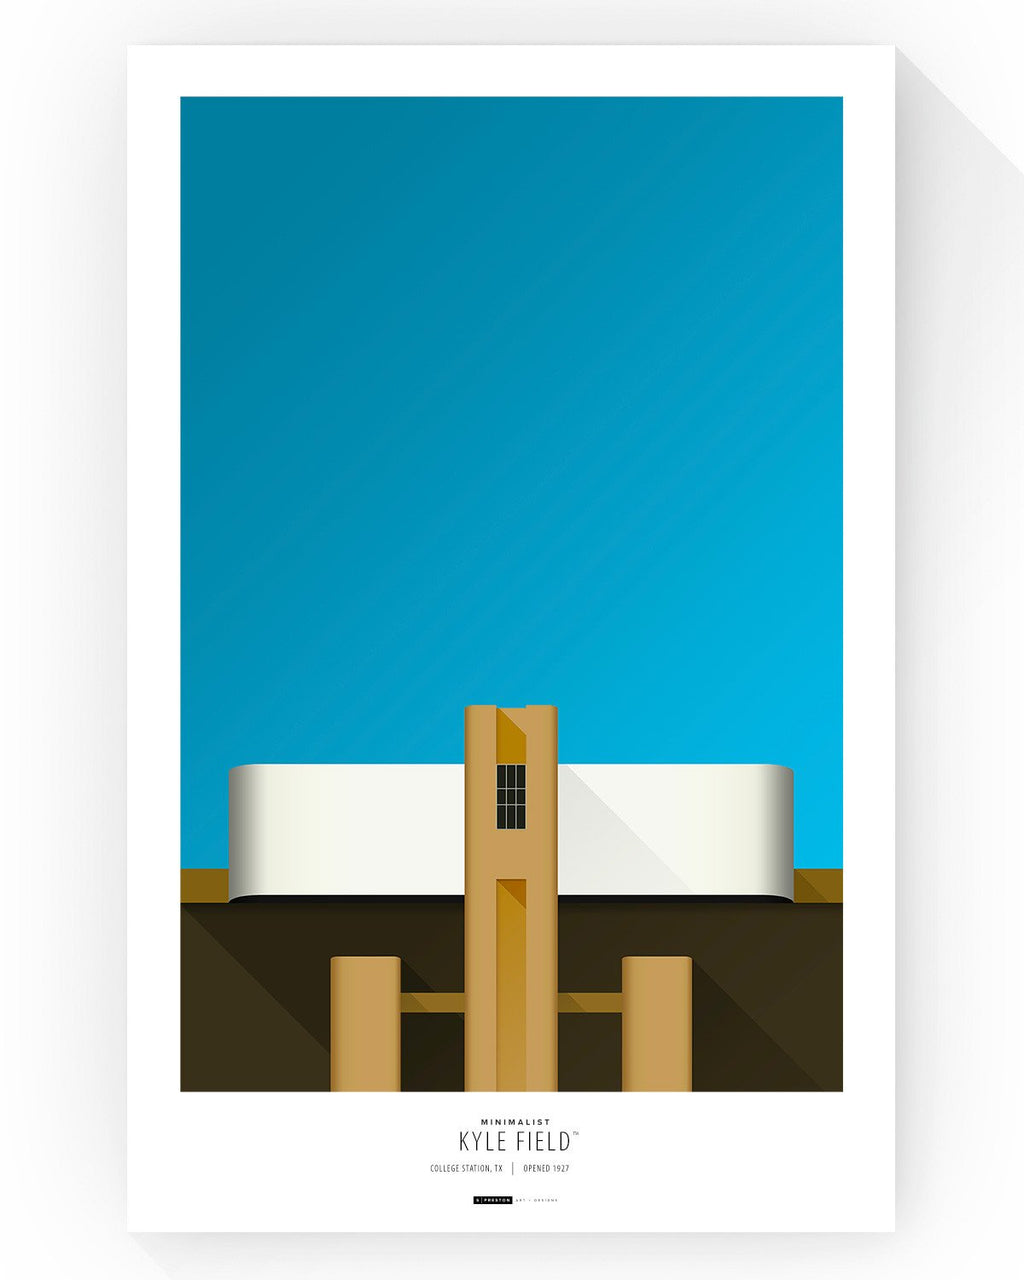 Minimalist Kyle Field Poster Print - Texas A&M - S. Preston Art + Designs